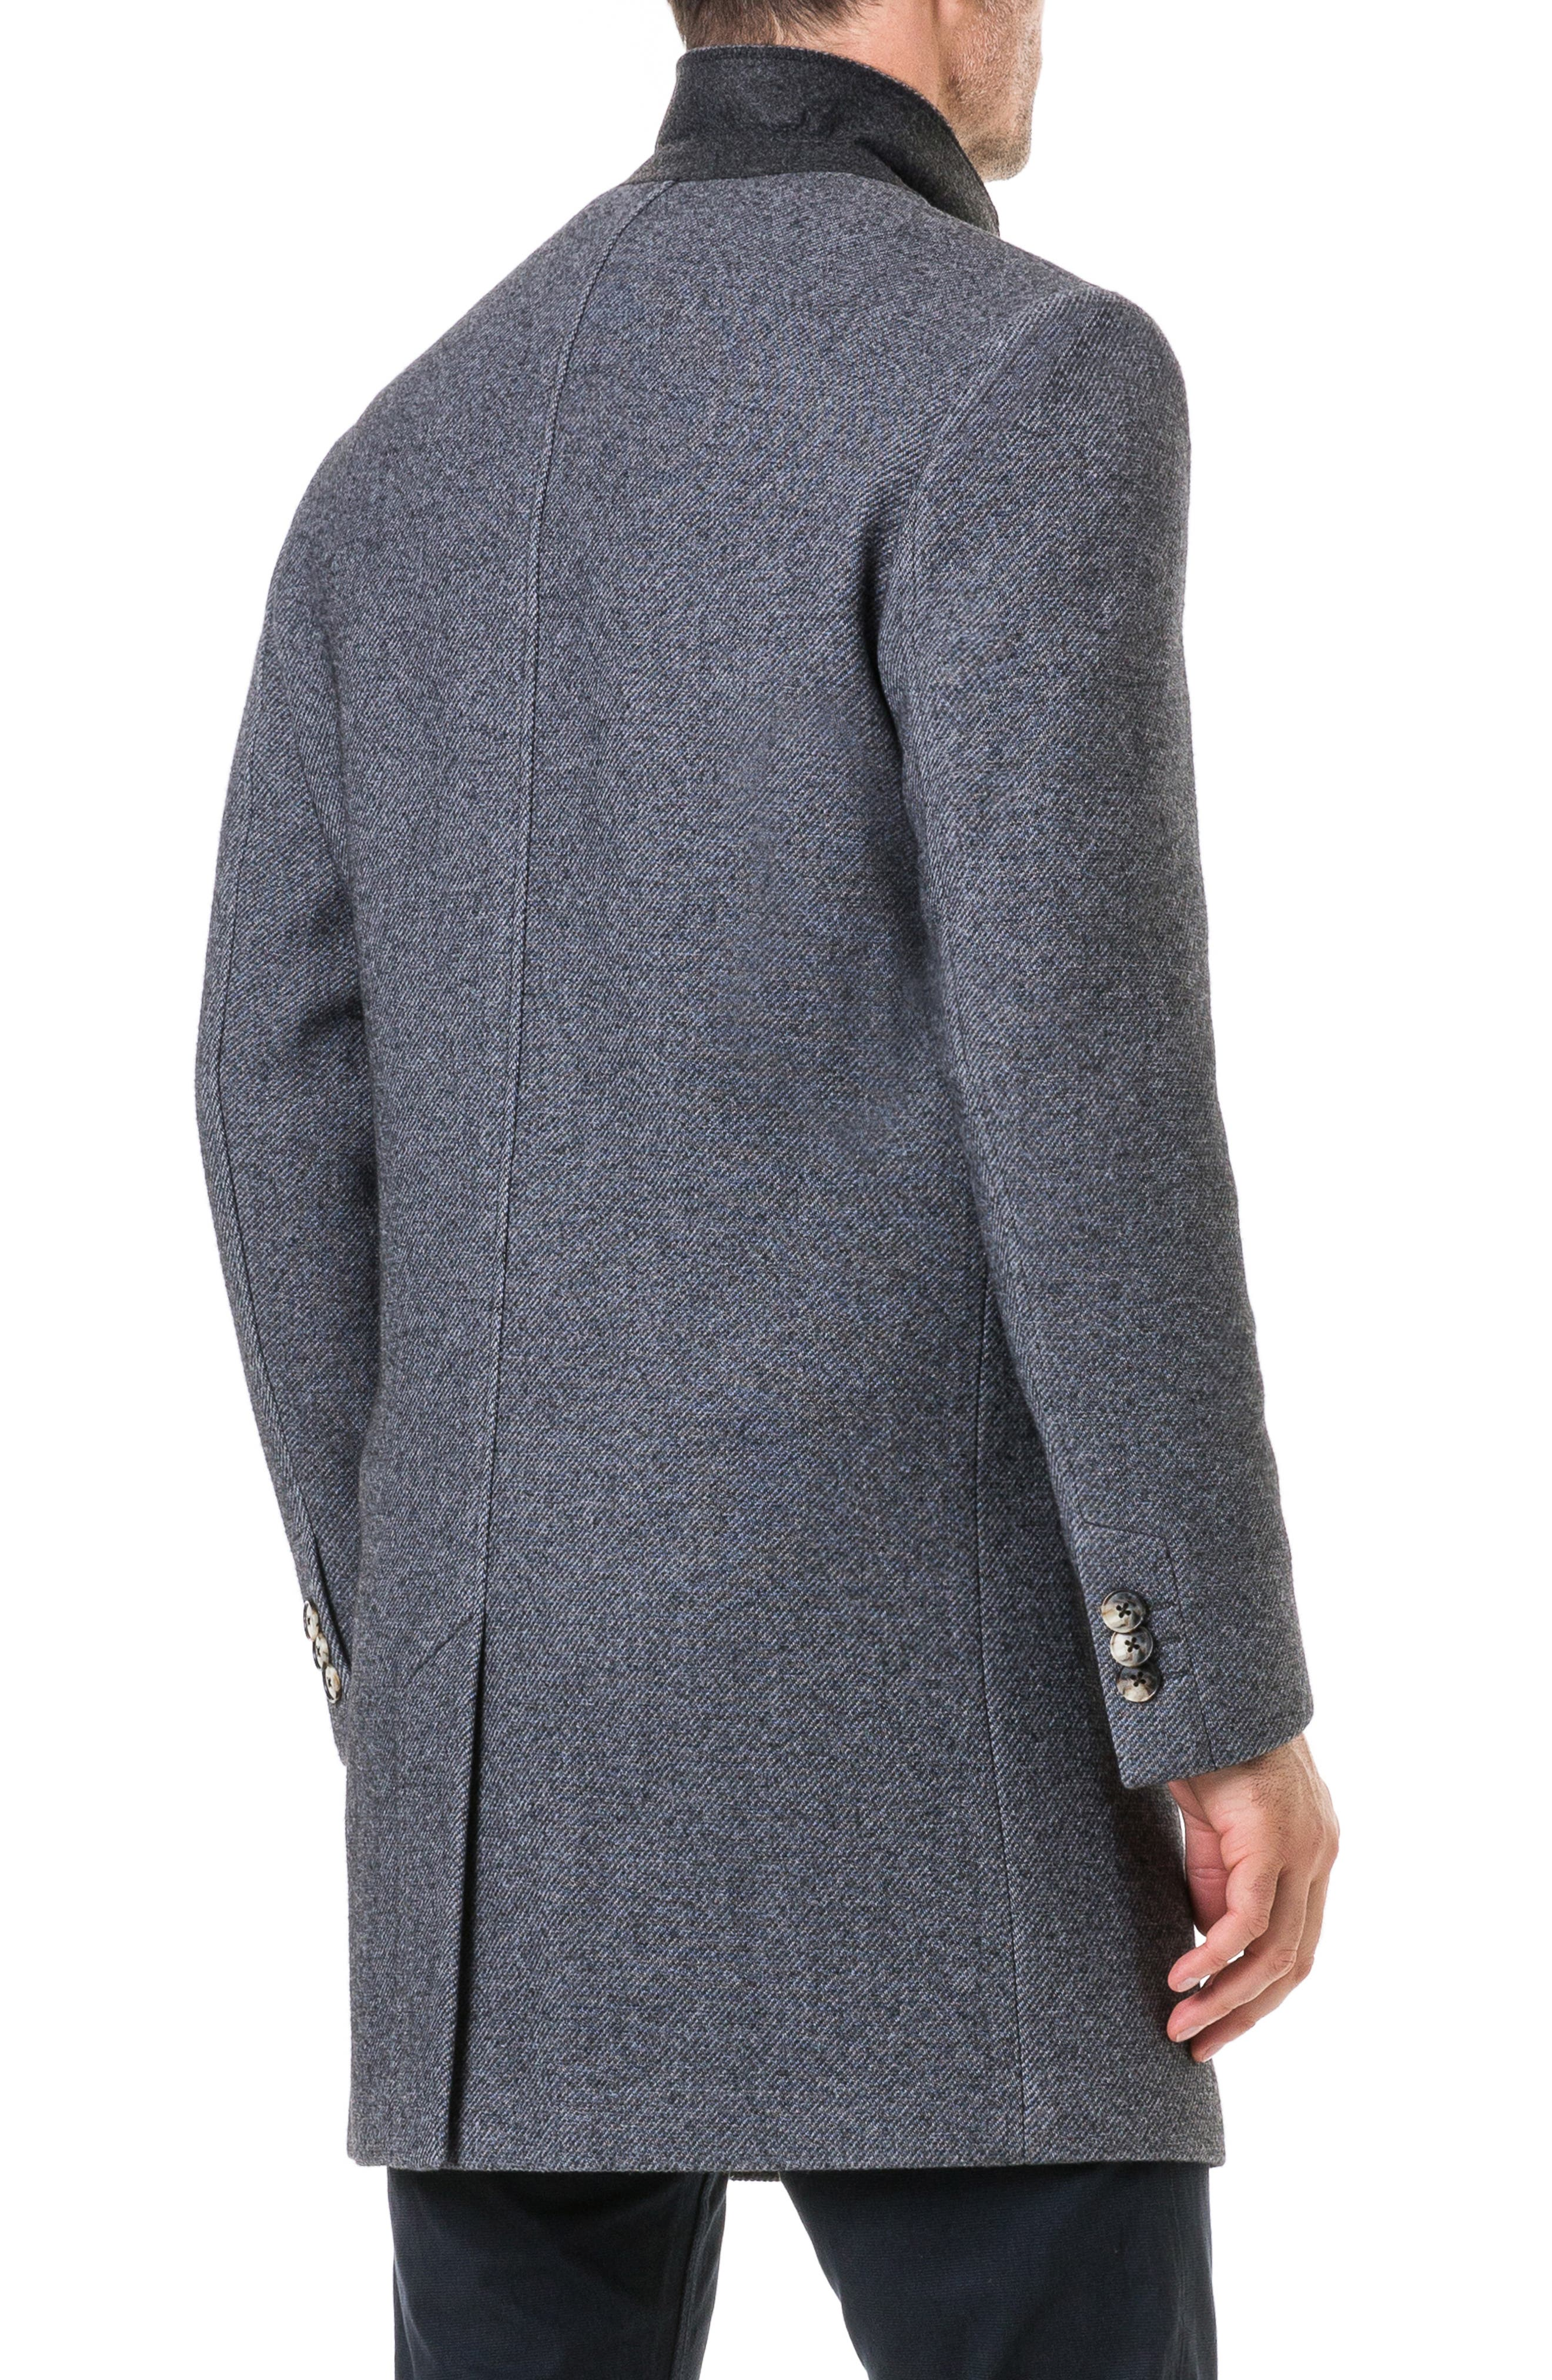 Calton Hill Wool Blend Coat,                             Alternate thumbnail 2, color,                             020